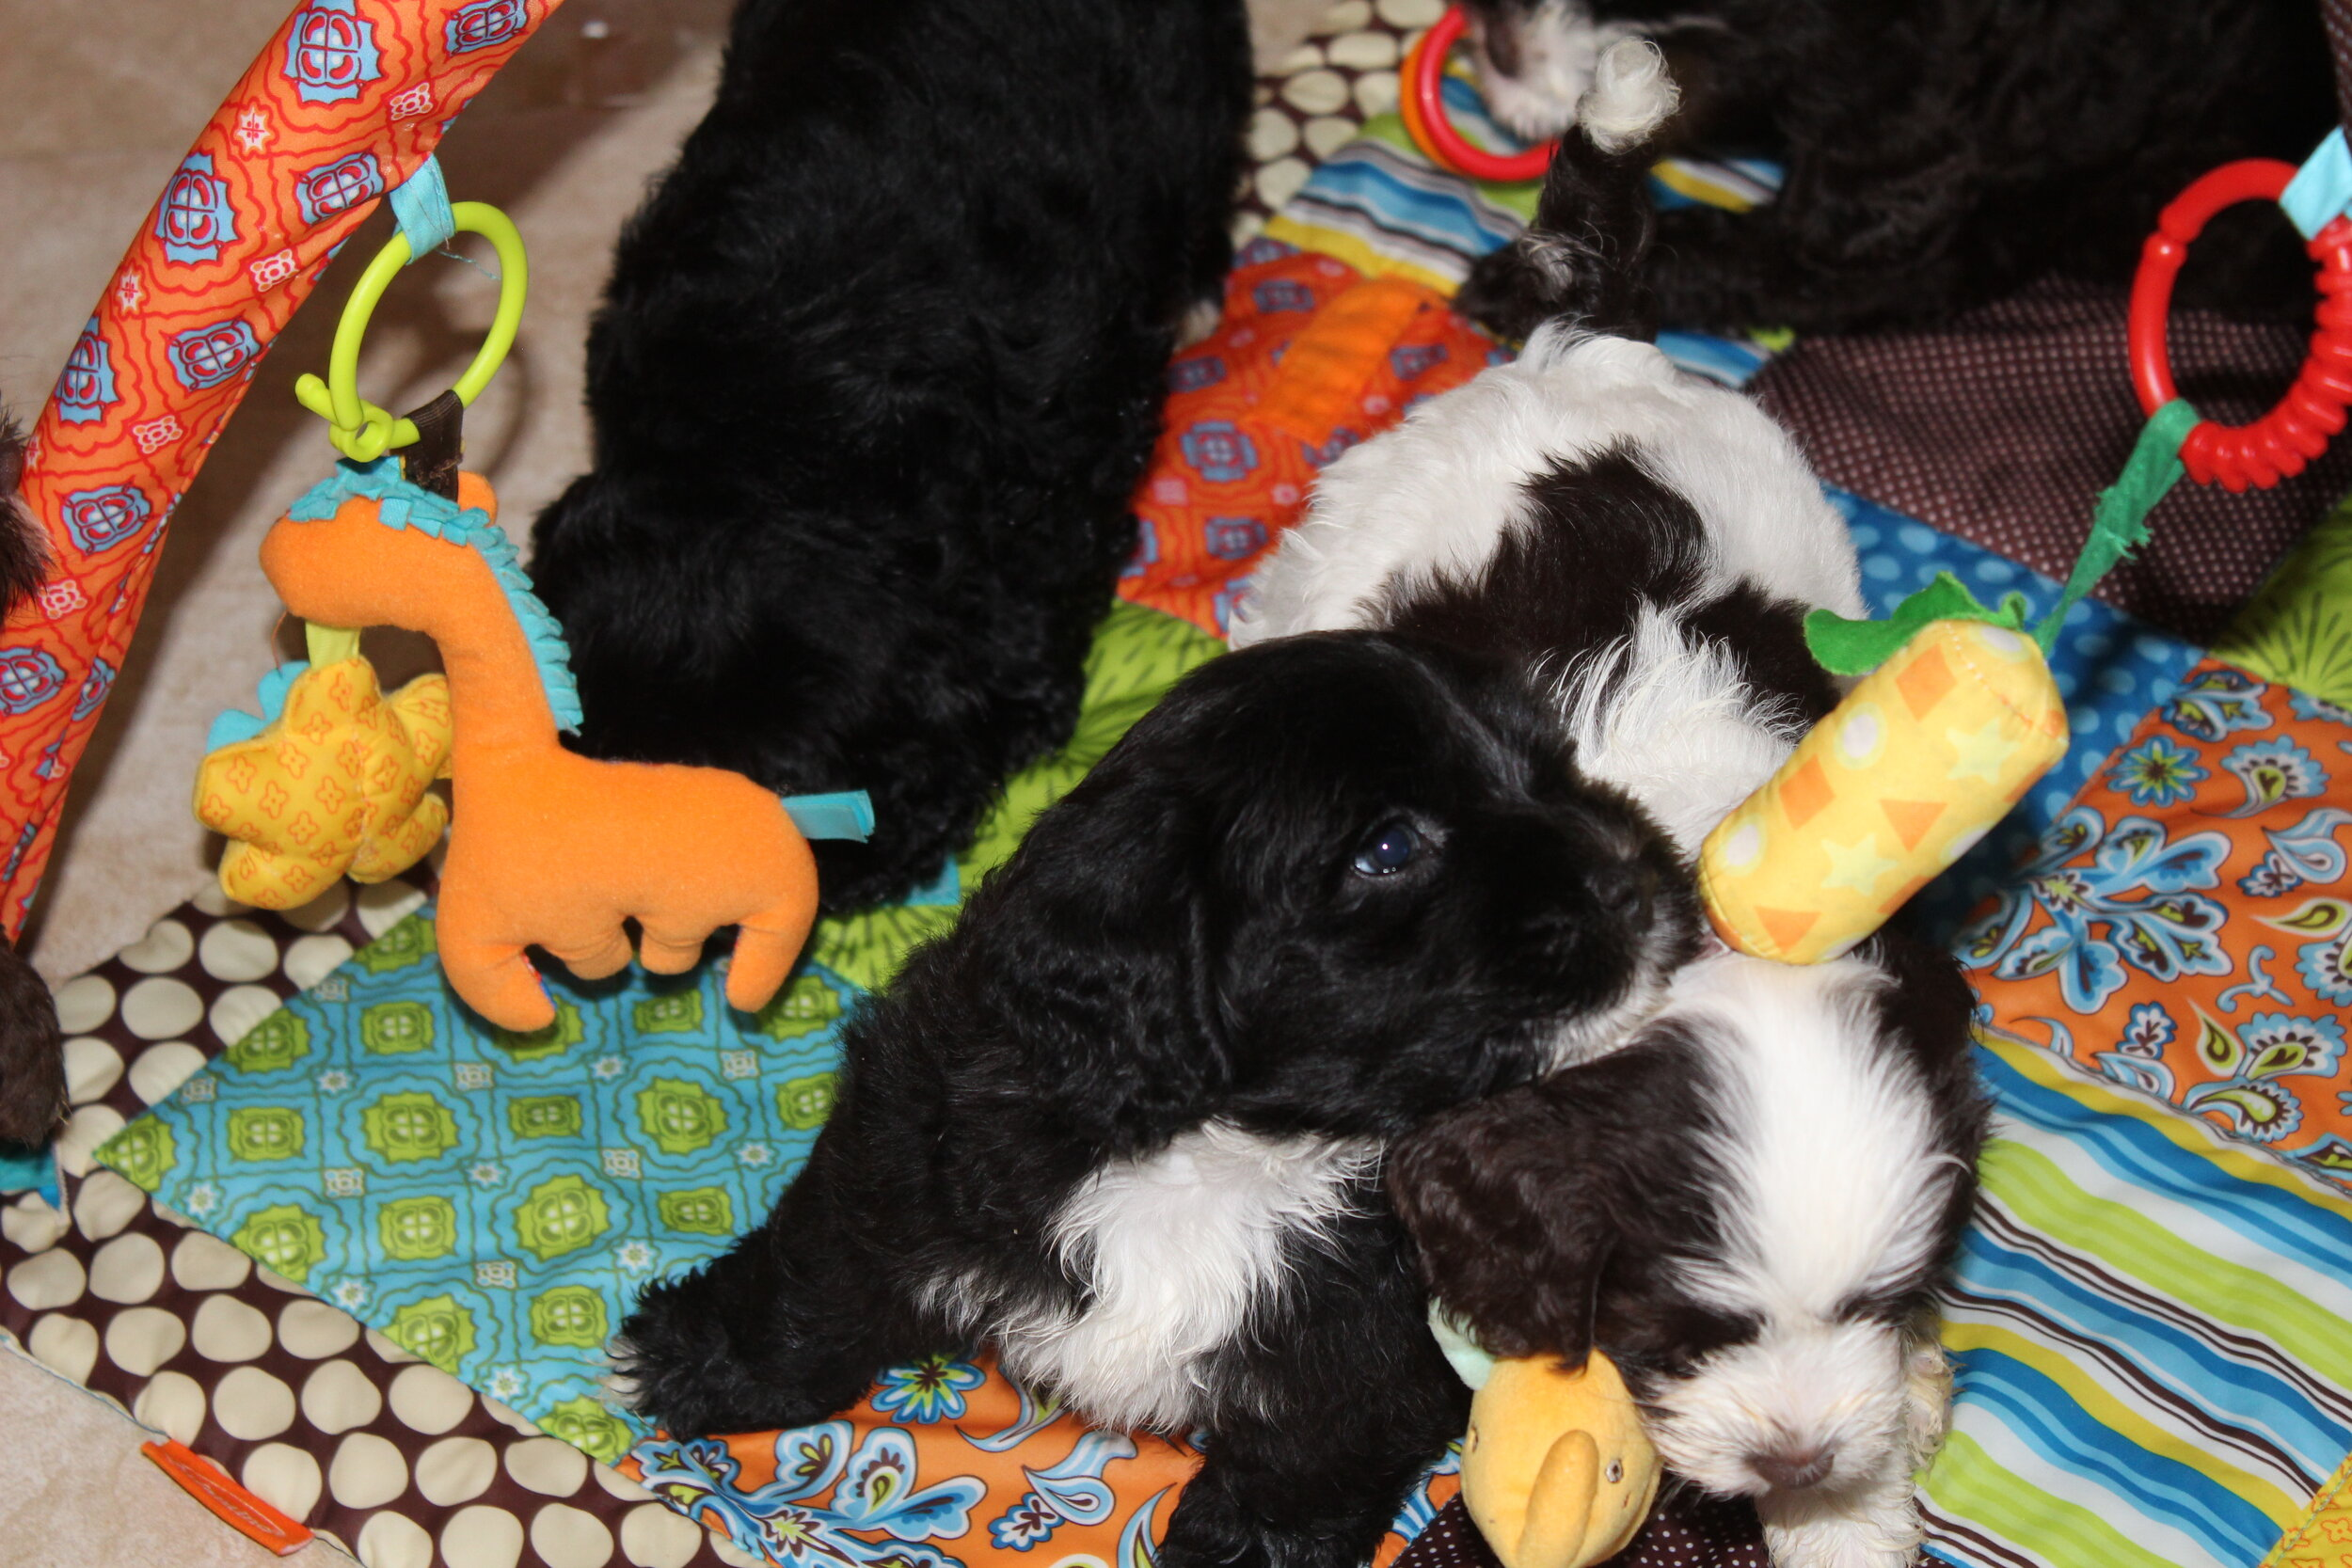 Carly Pups at Play 13 20JUL19 158.JPG